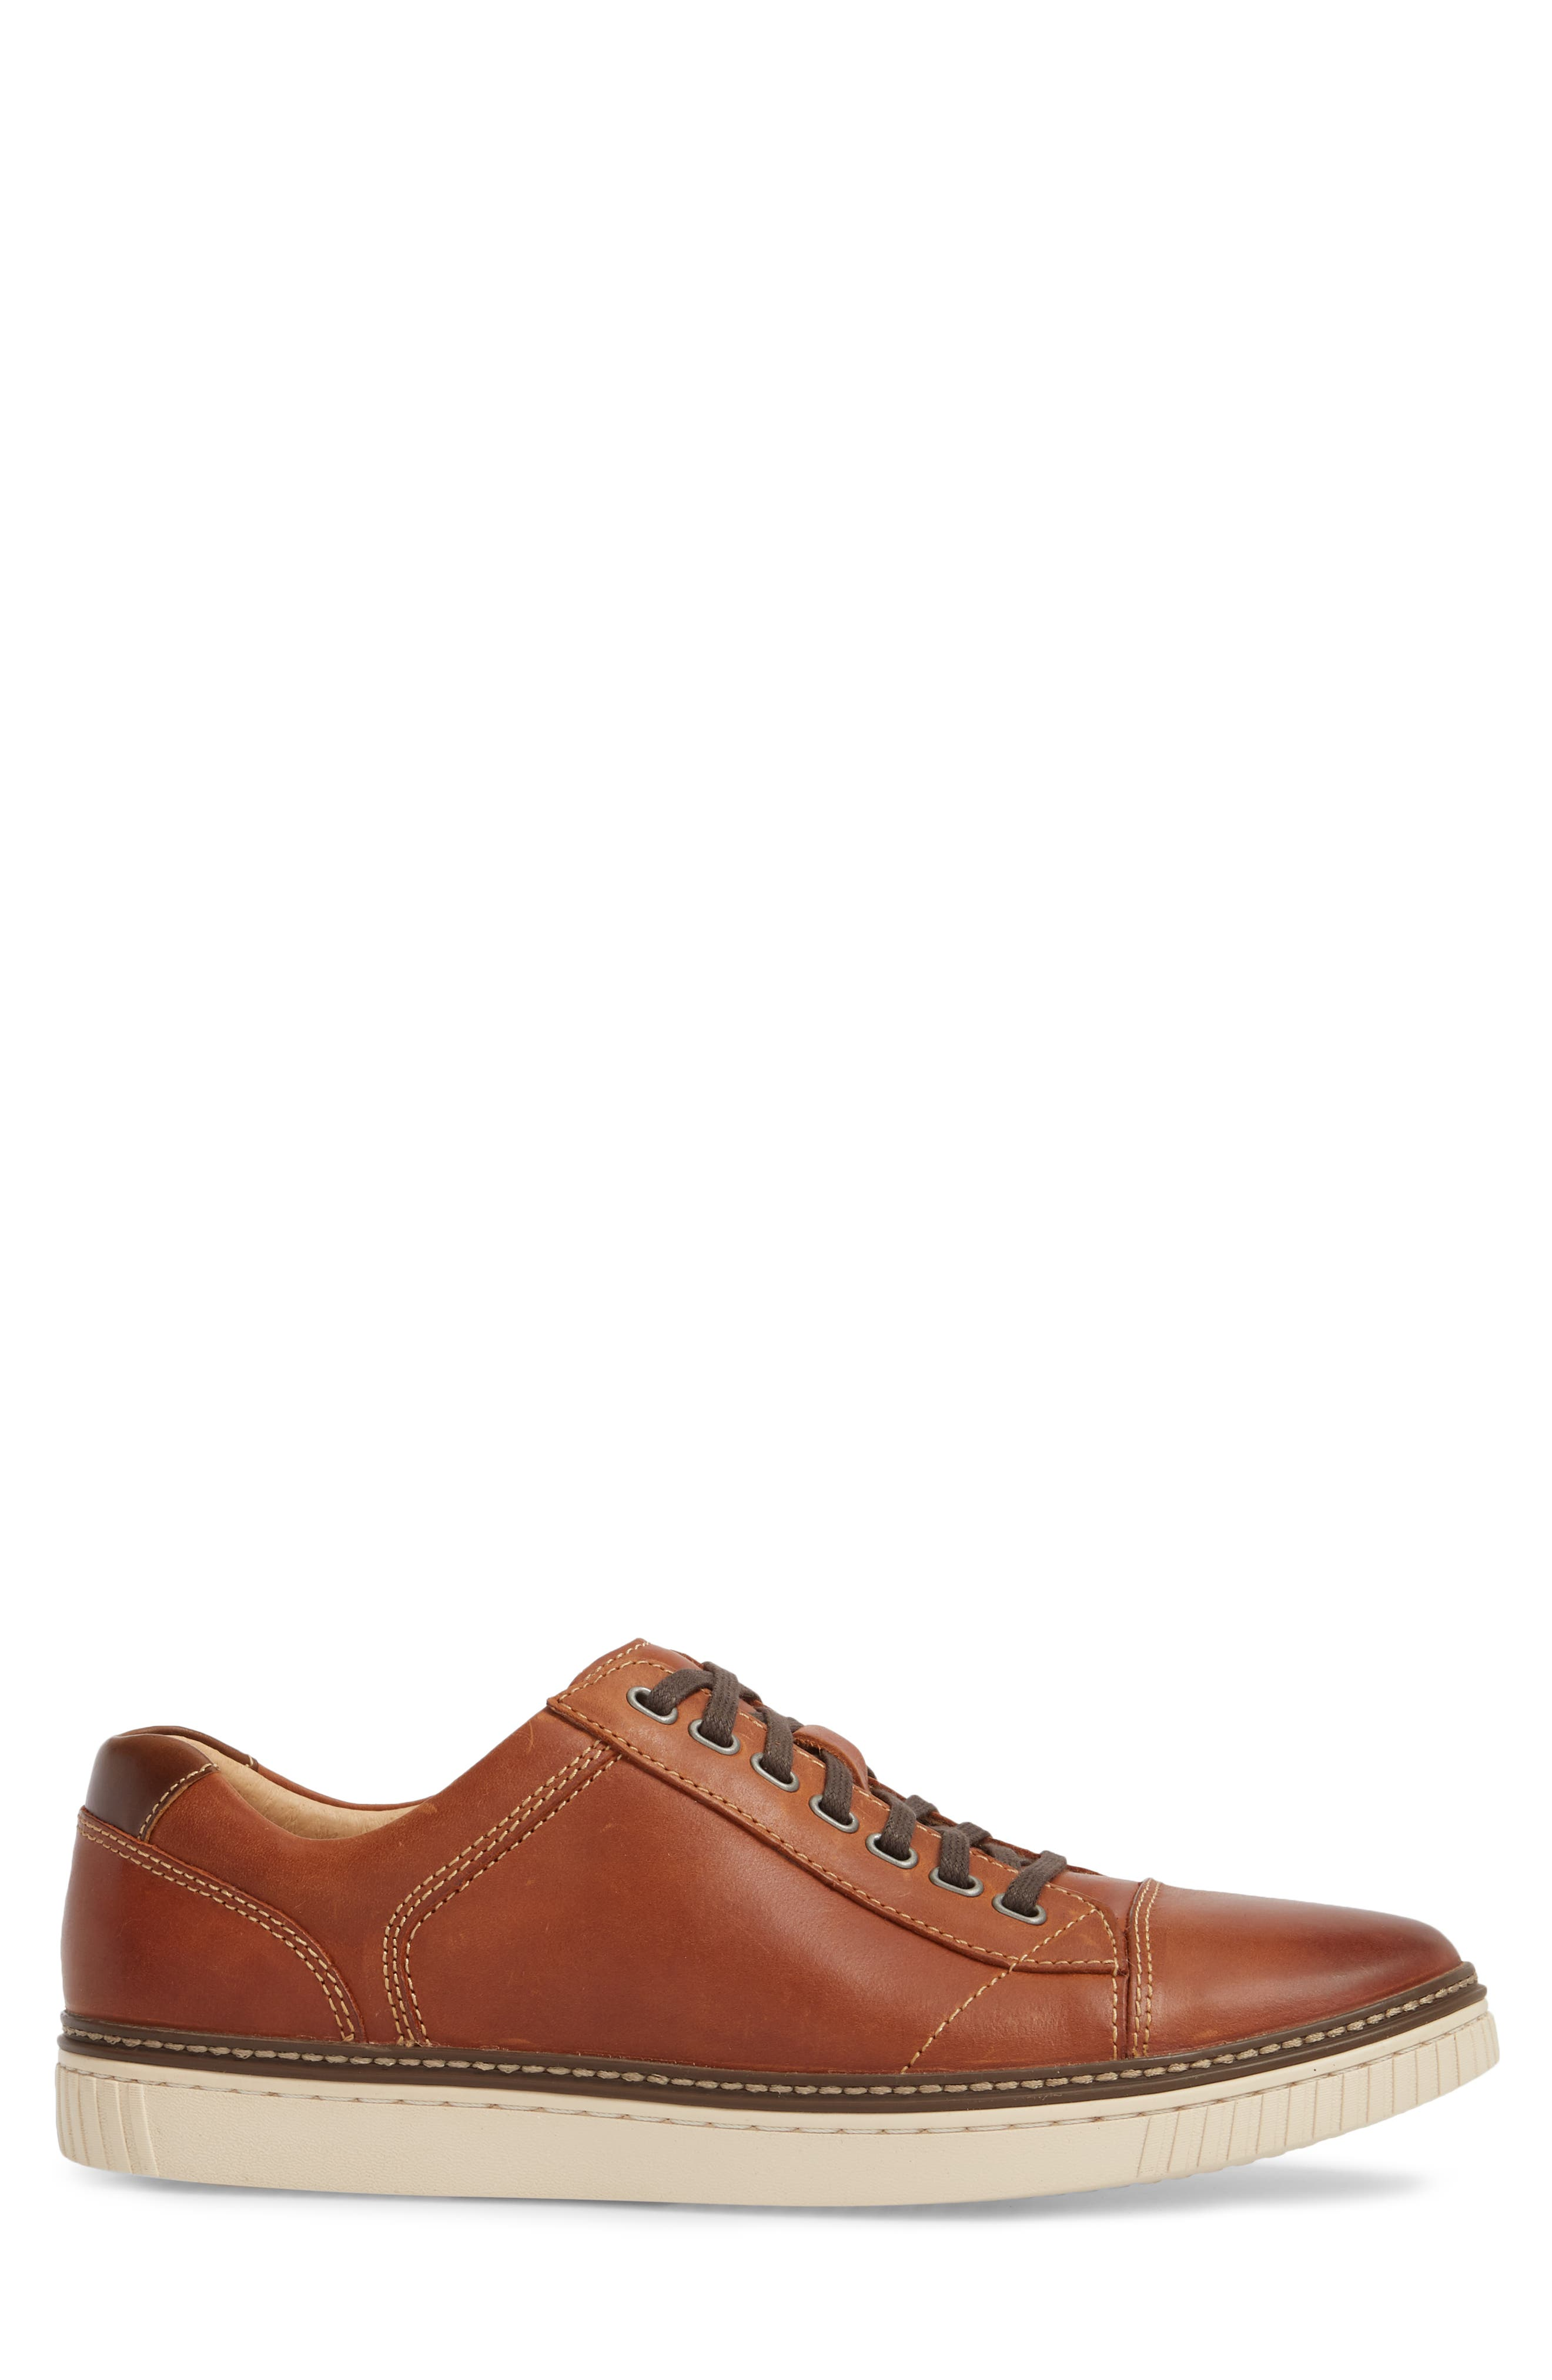 Wallace Low Top Sneaker,                             Alternate thumbnail 3, color,                             TAN NUBUCK